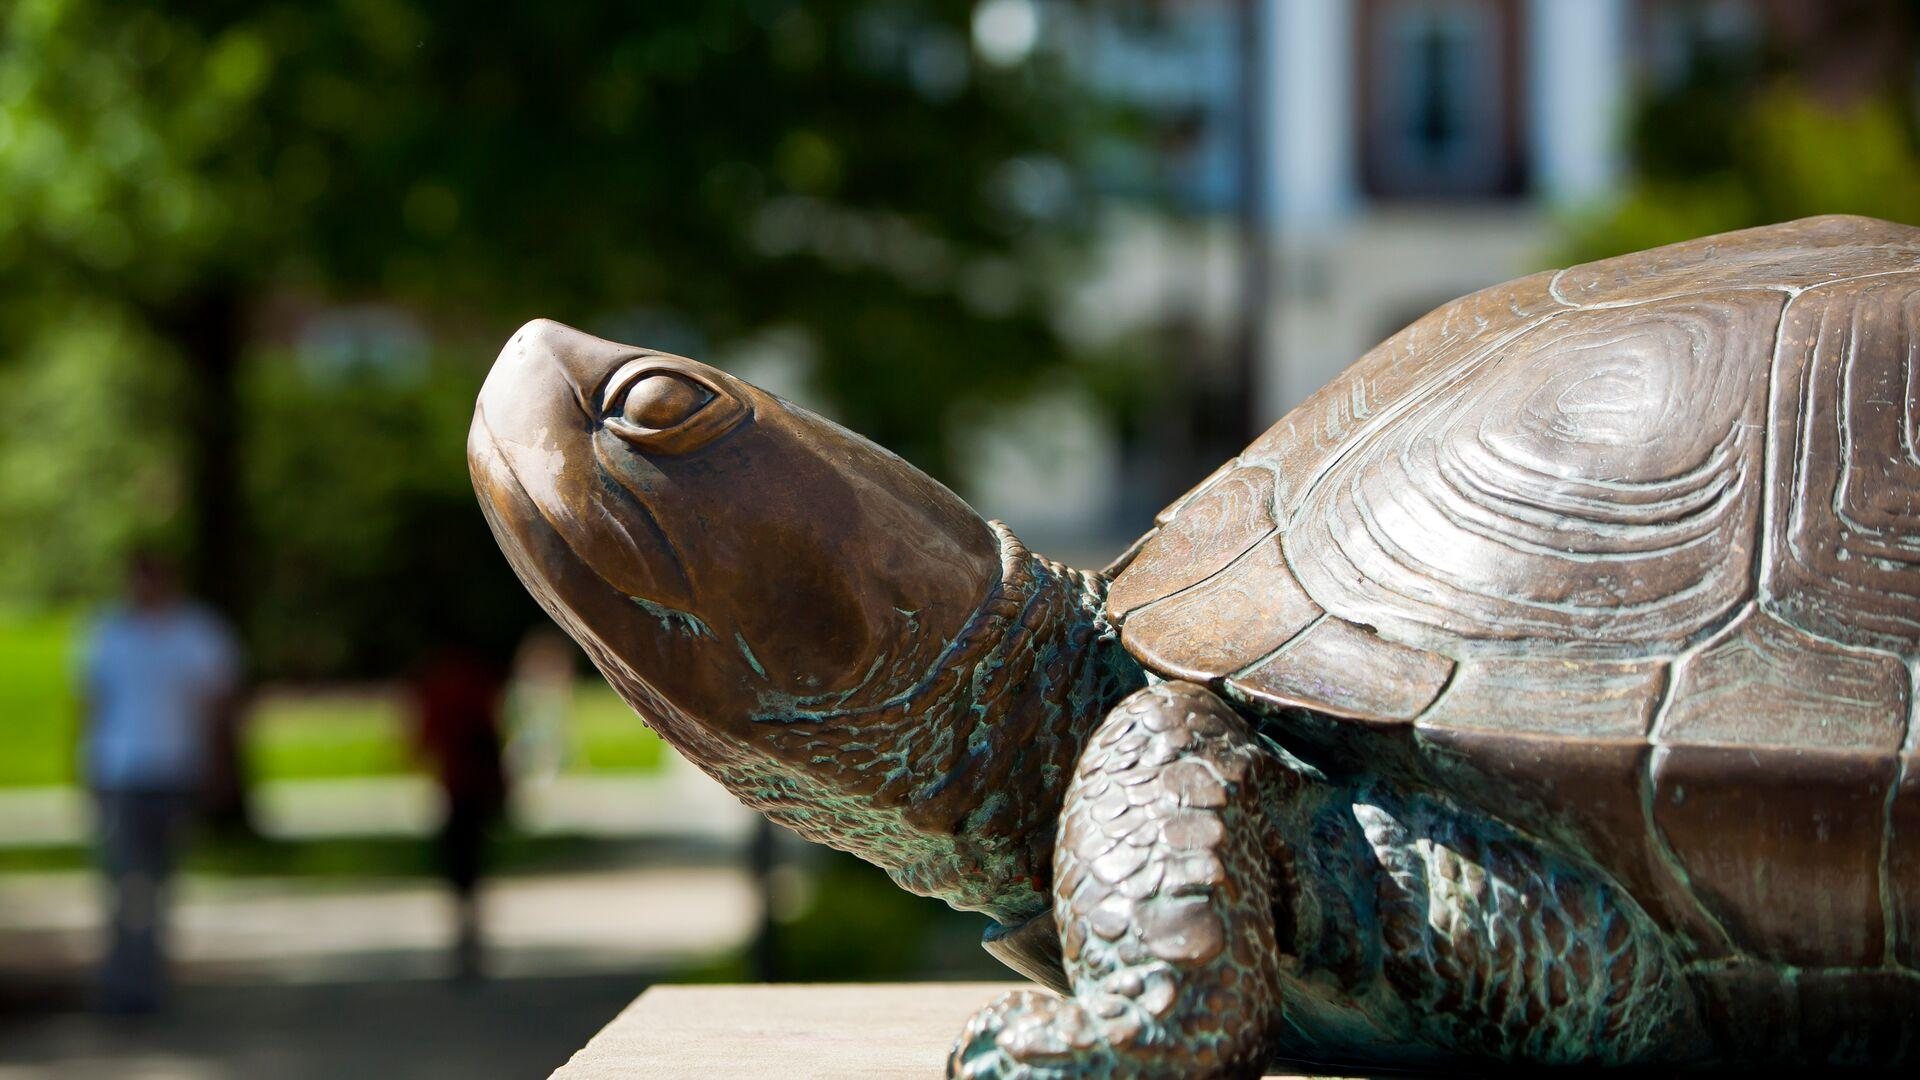 View of Testudo bronze statue in front of McKeldin Library, with students walking in the background.